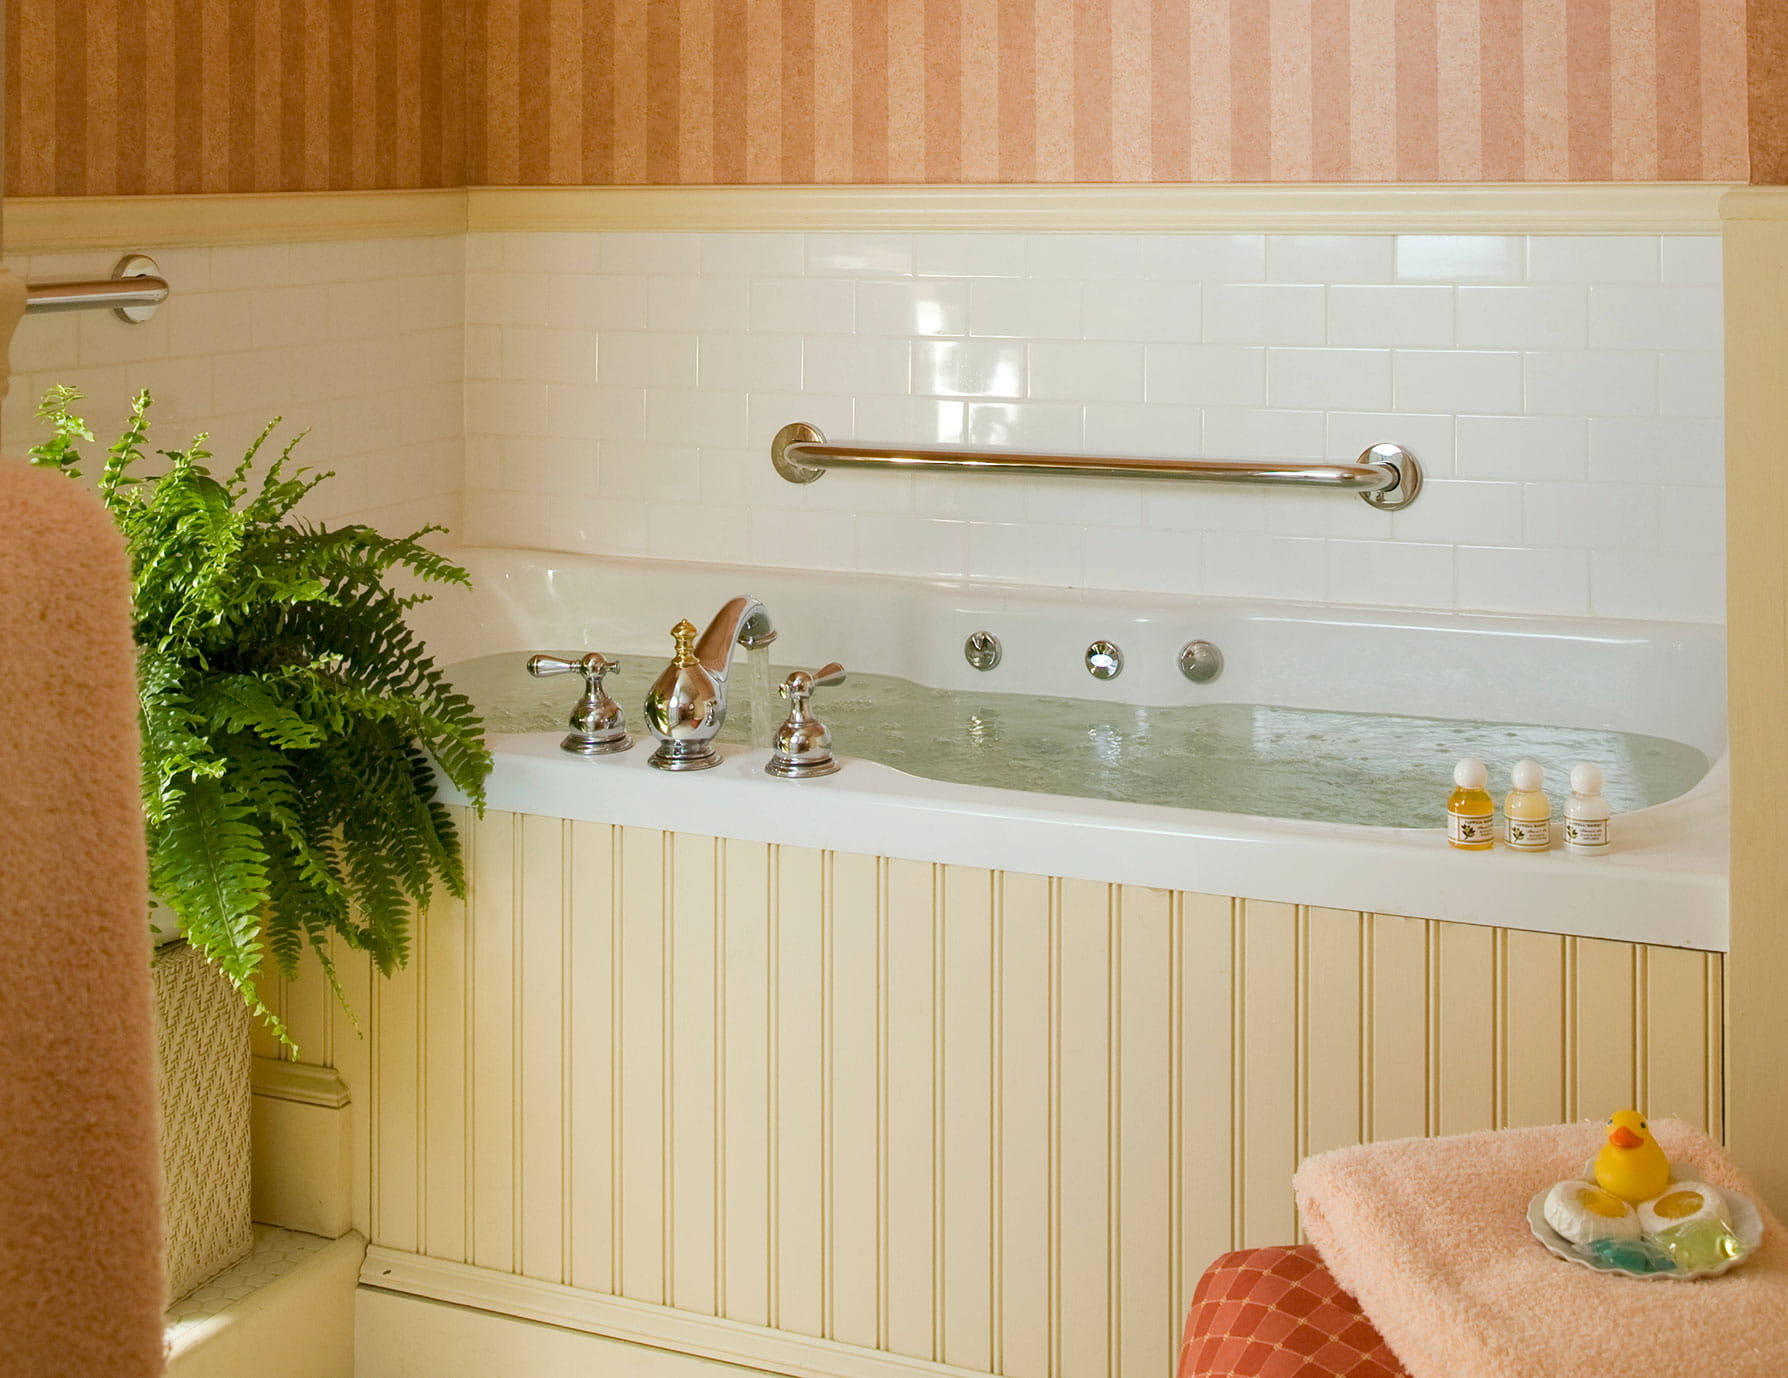 Full, warm bathtub with soaps and decorative fern